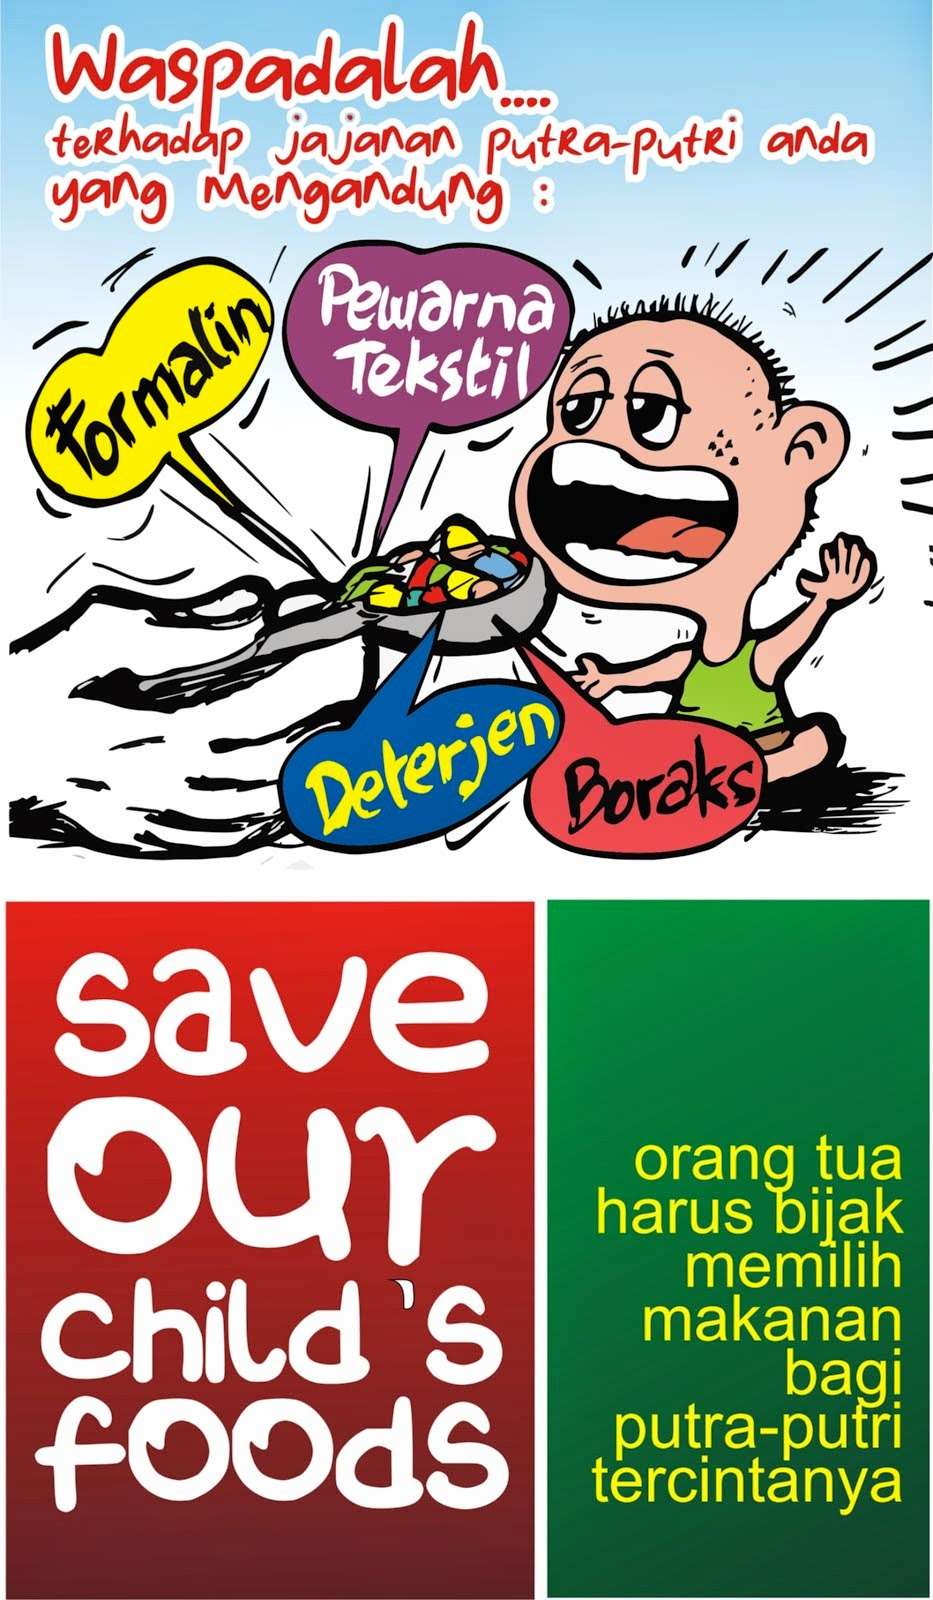 Save Our Child's Foods